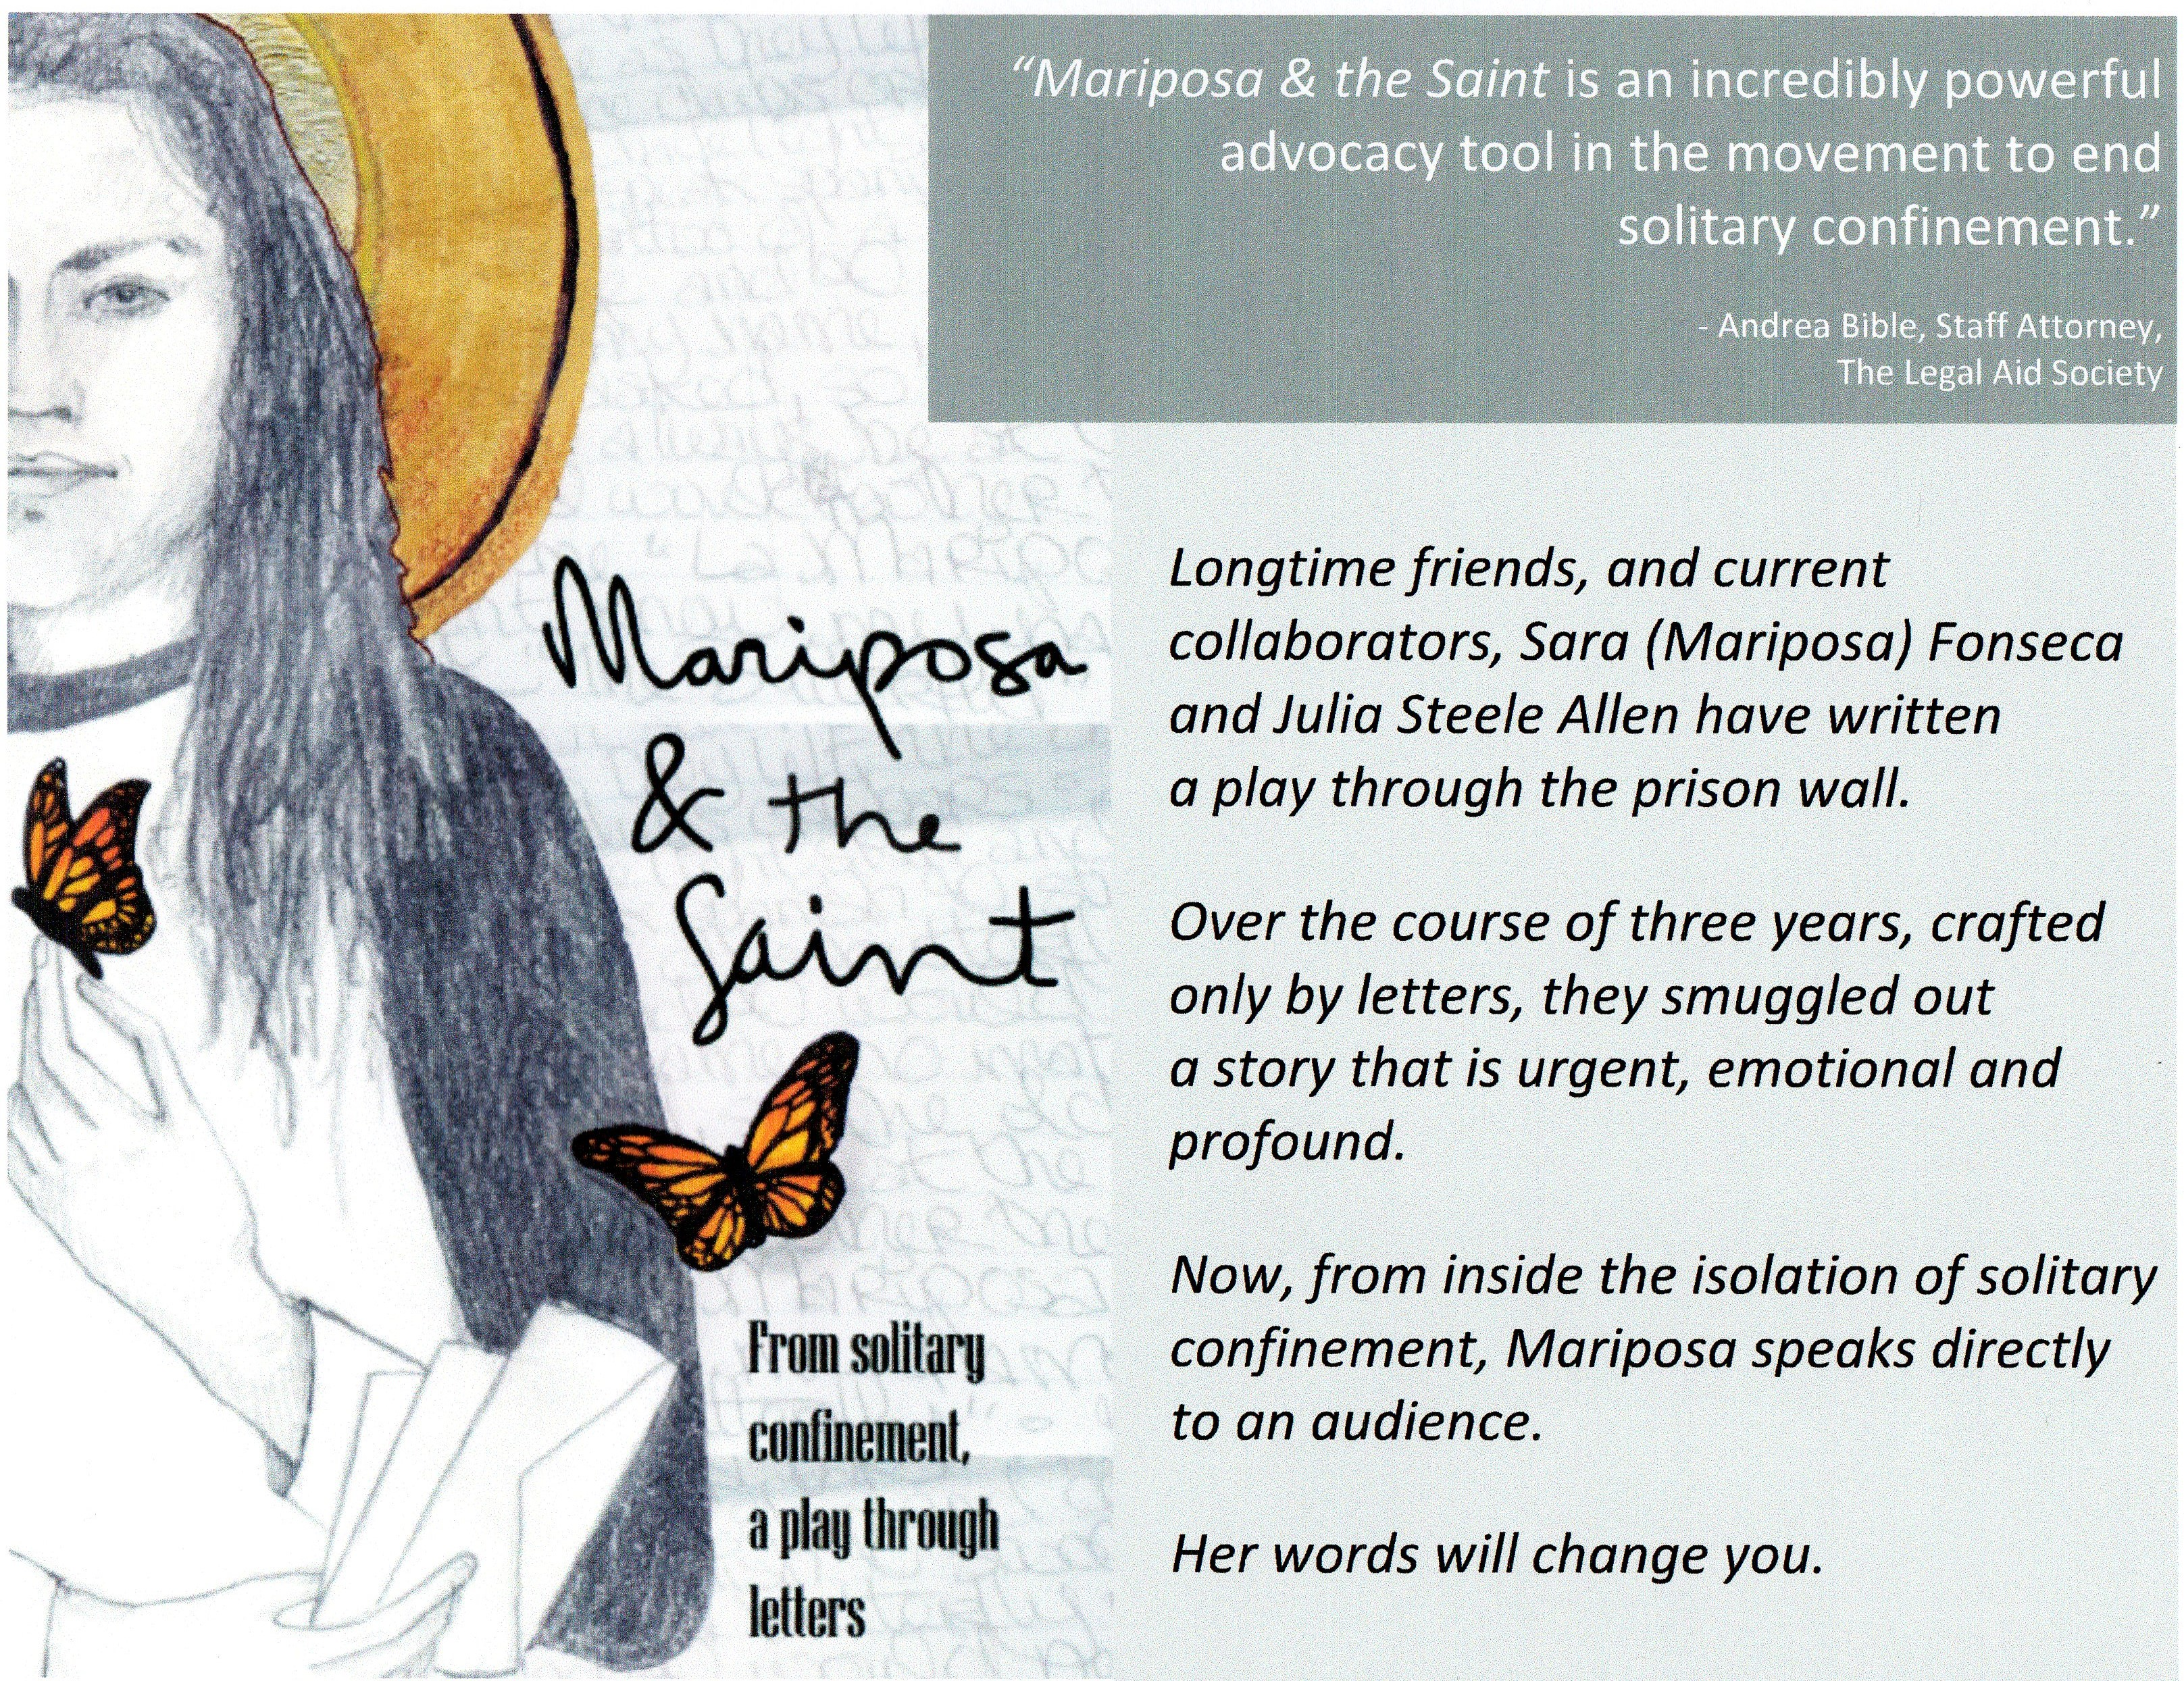 Mariposa & the Saint announcement